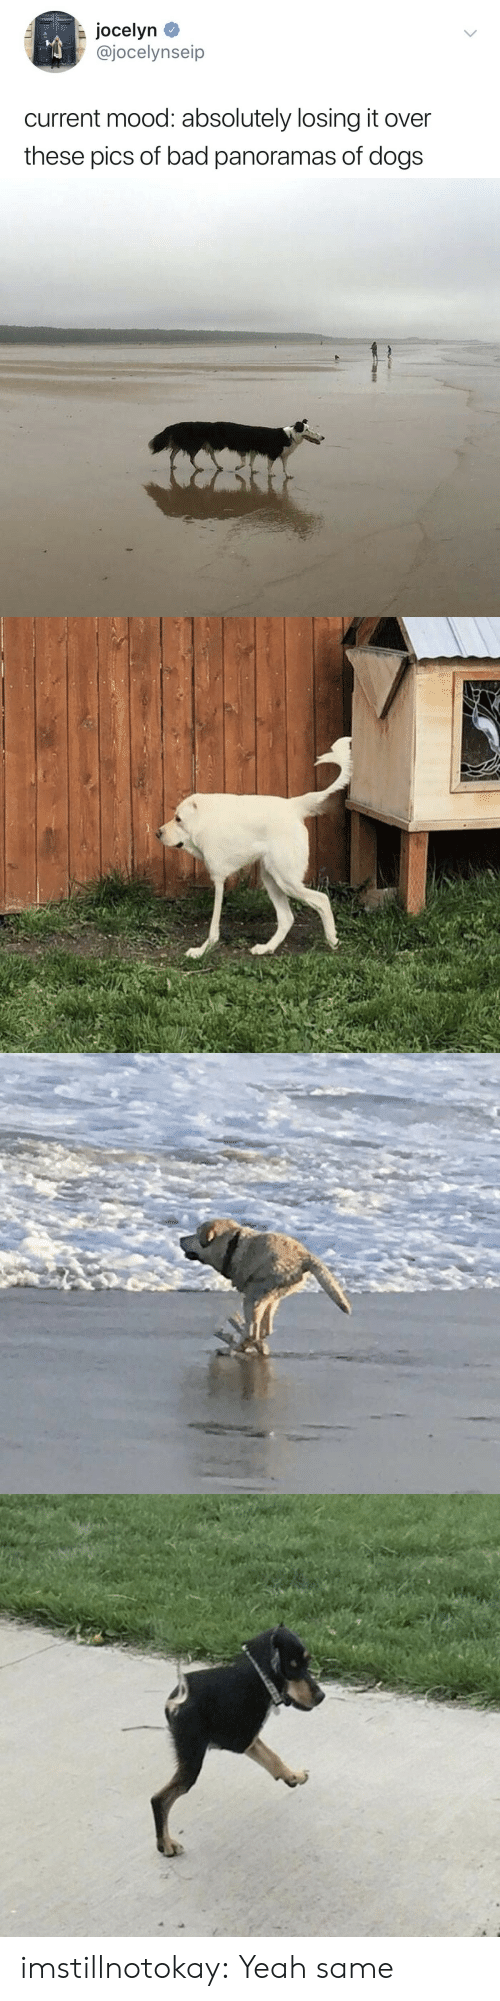 Pics Of: Jocelyn  @jocelynseip  current mood: absolutely losing it over  these pics of bad panoramas of dogs imstillnotokay:  Yeah same